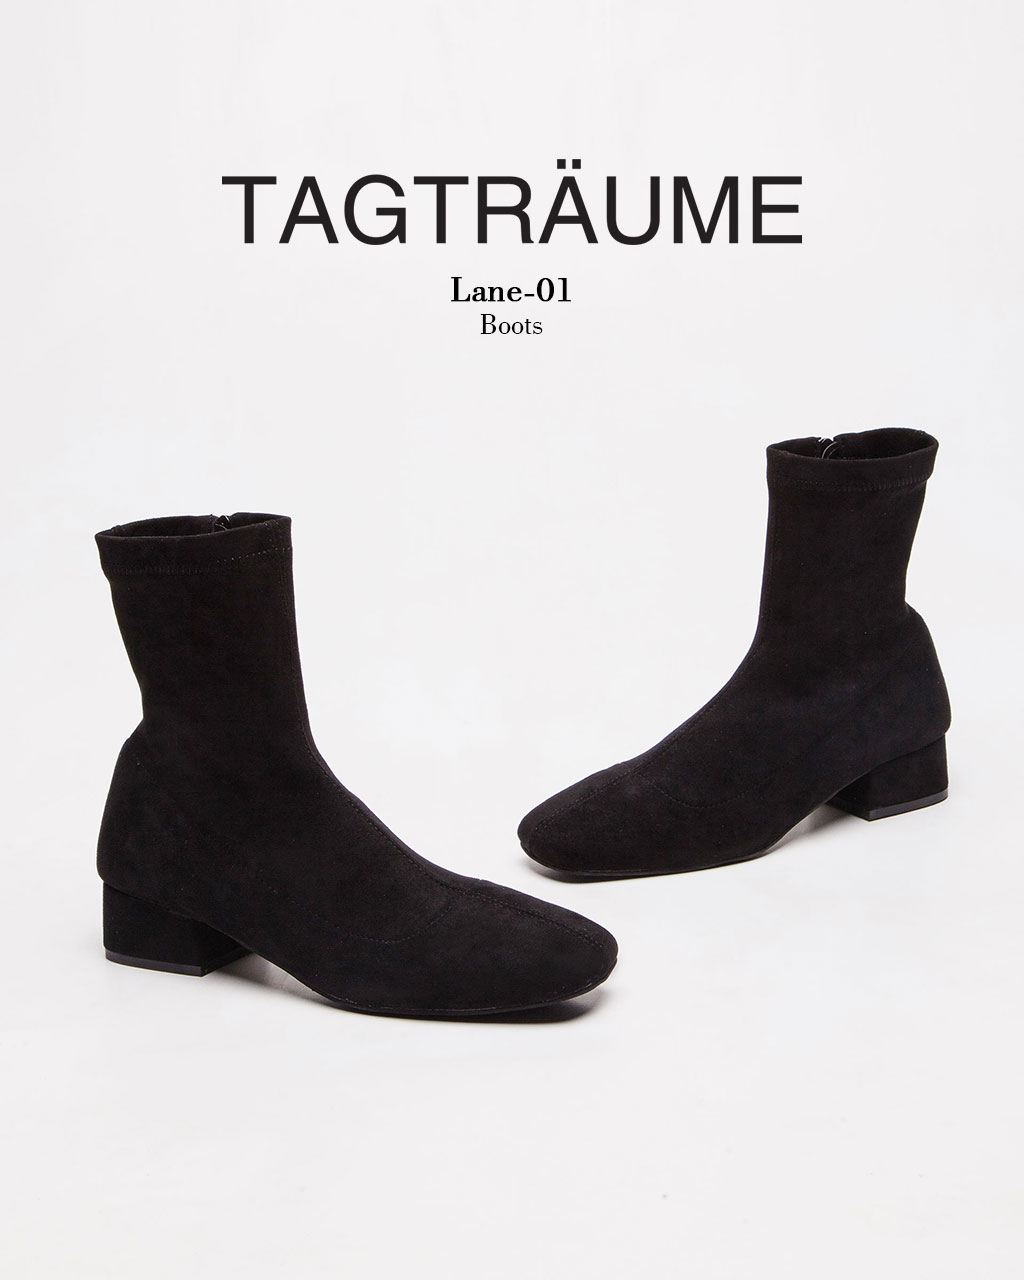 Tagtraume Lane-01 - Black Suede(블랙 스웨이드)